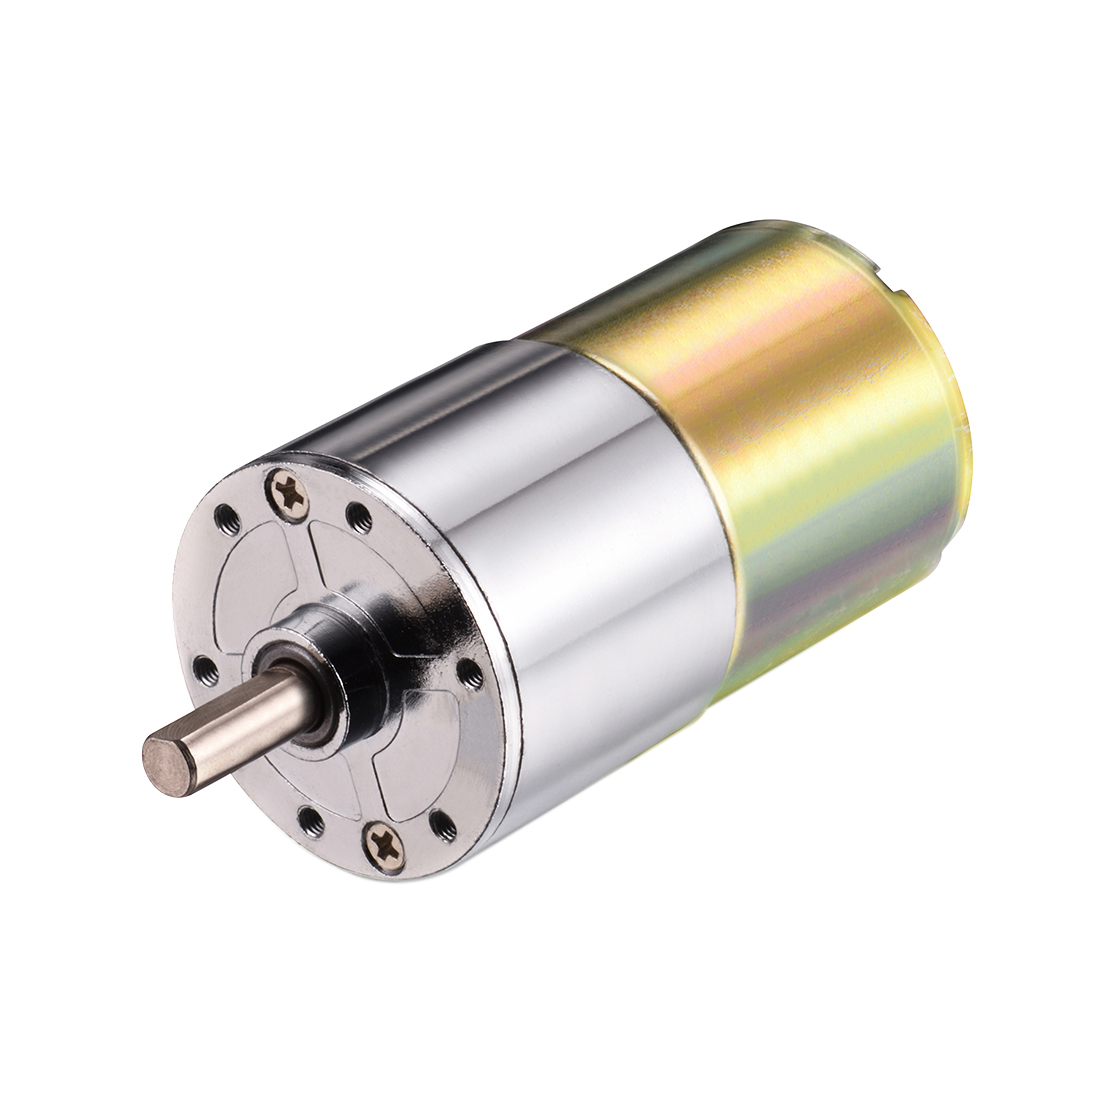 DC 12V 200RPM Micro Gear Box Motor Speed Reduction Electric Gearbox Centric Output Shaft